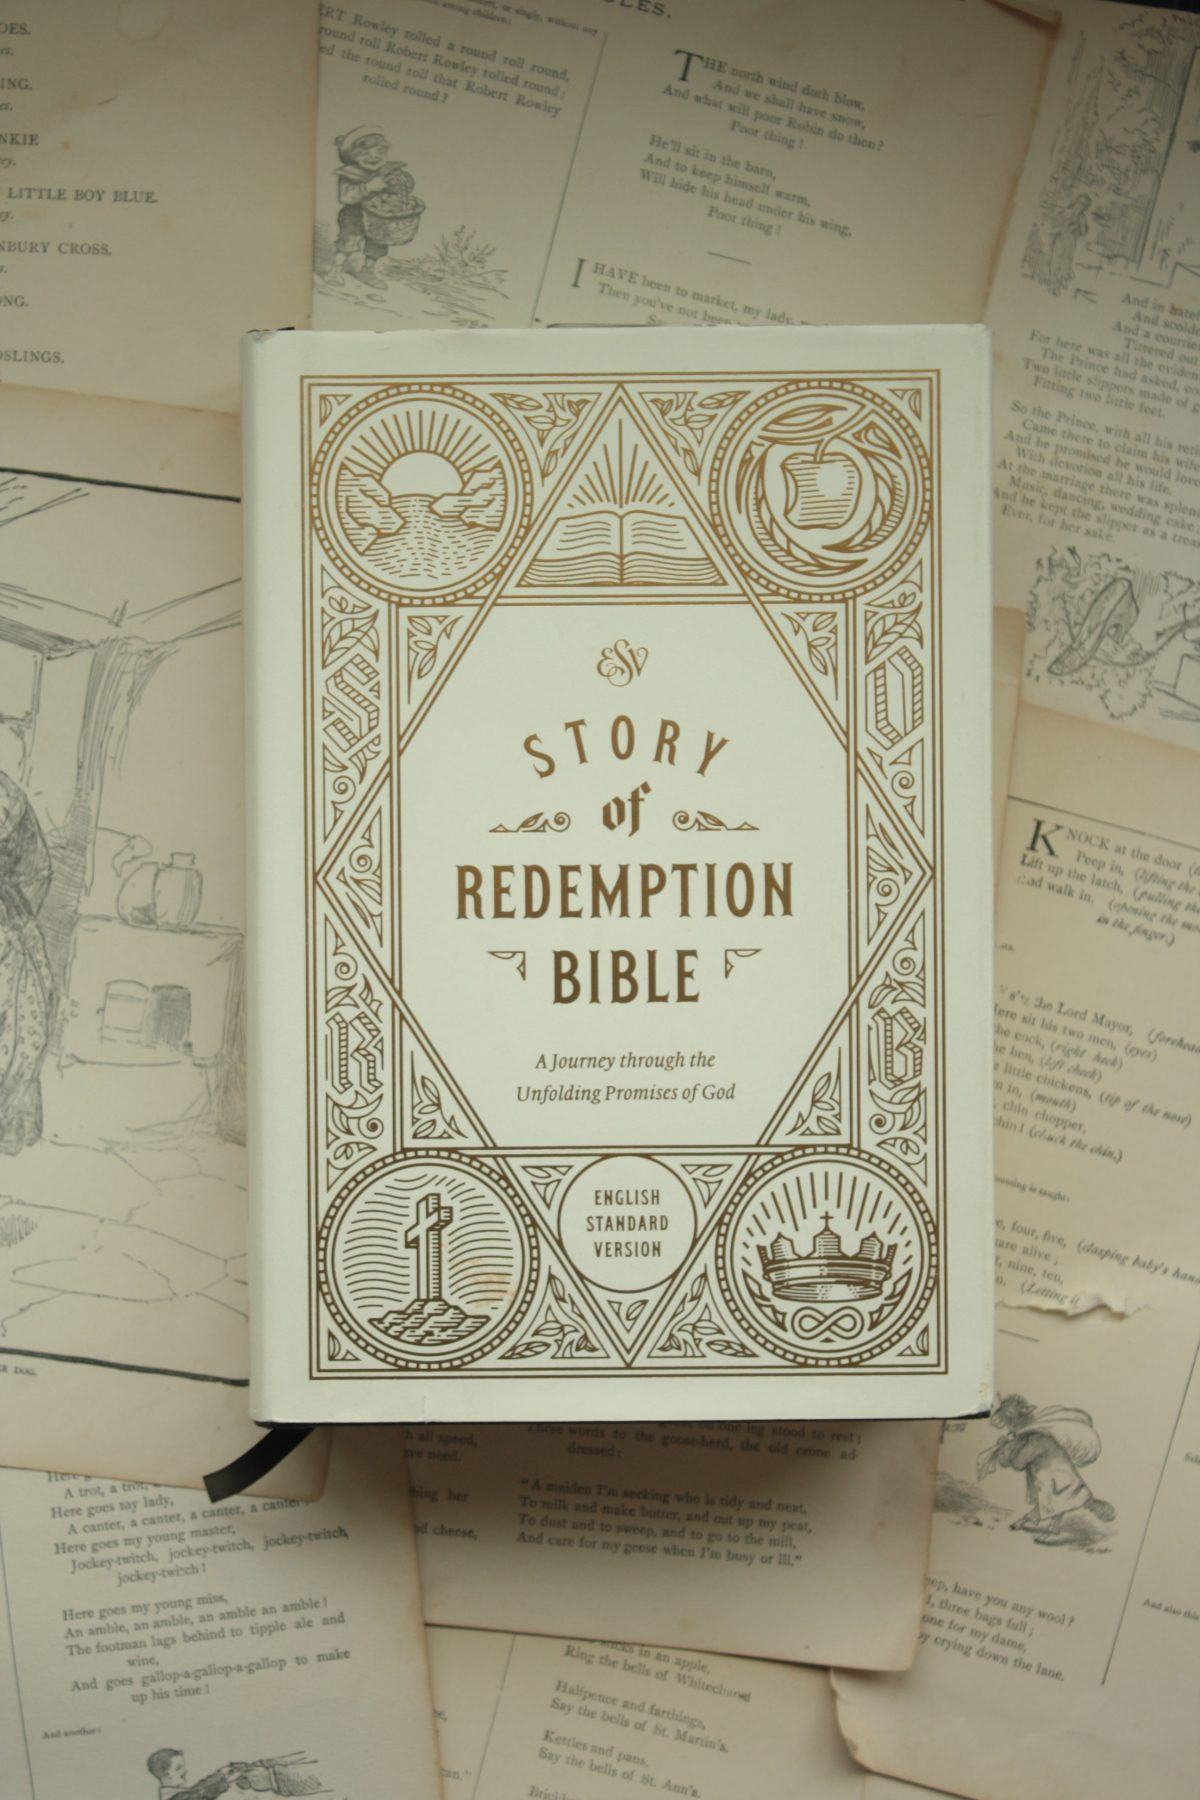 ESV Story of Redemption Bible | Little Book, Big Story